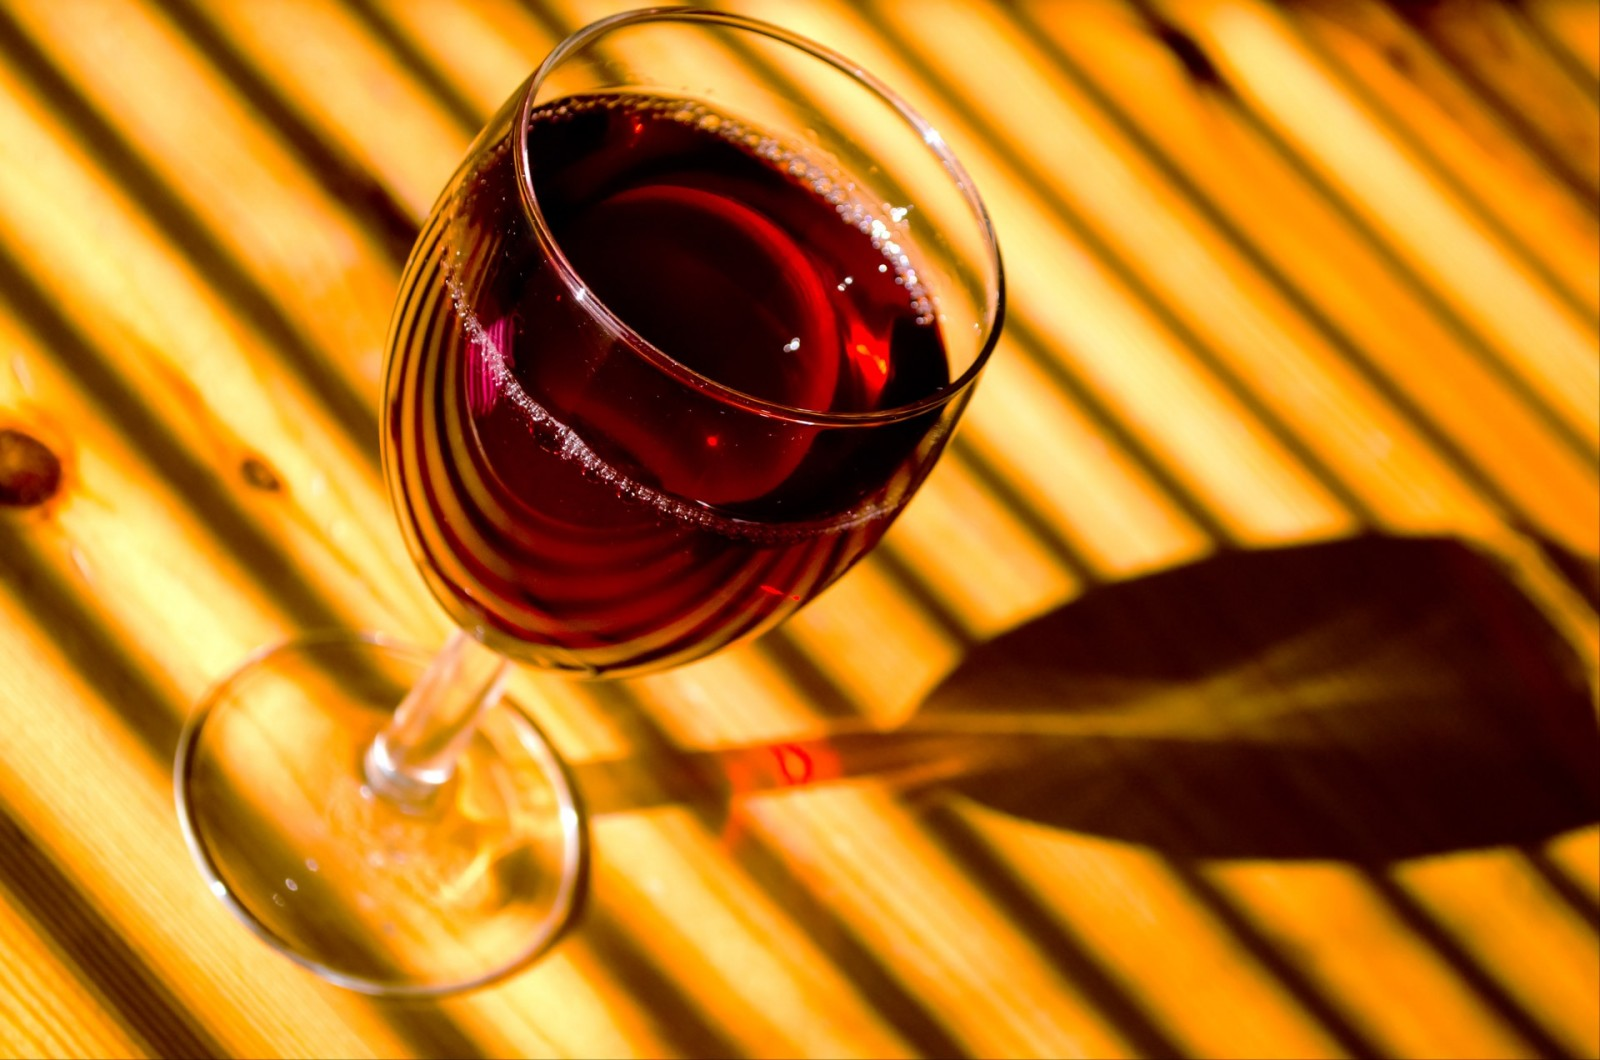 Finding Unexpected Flavors in Wine